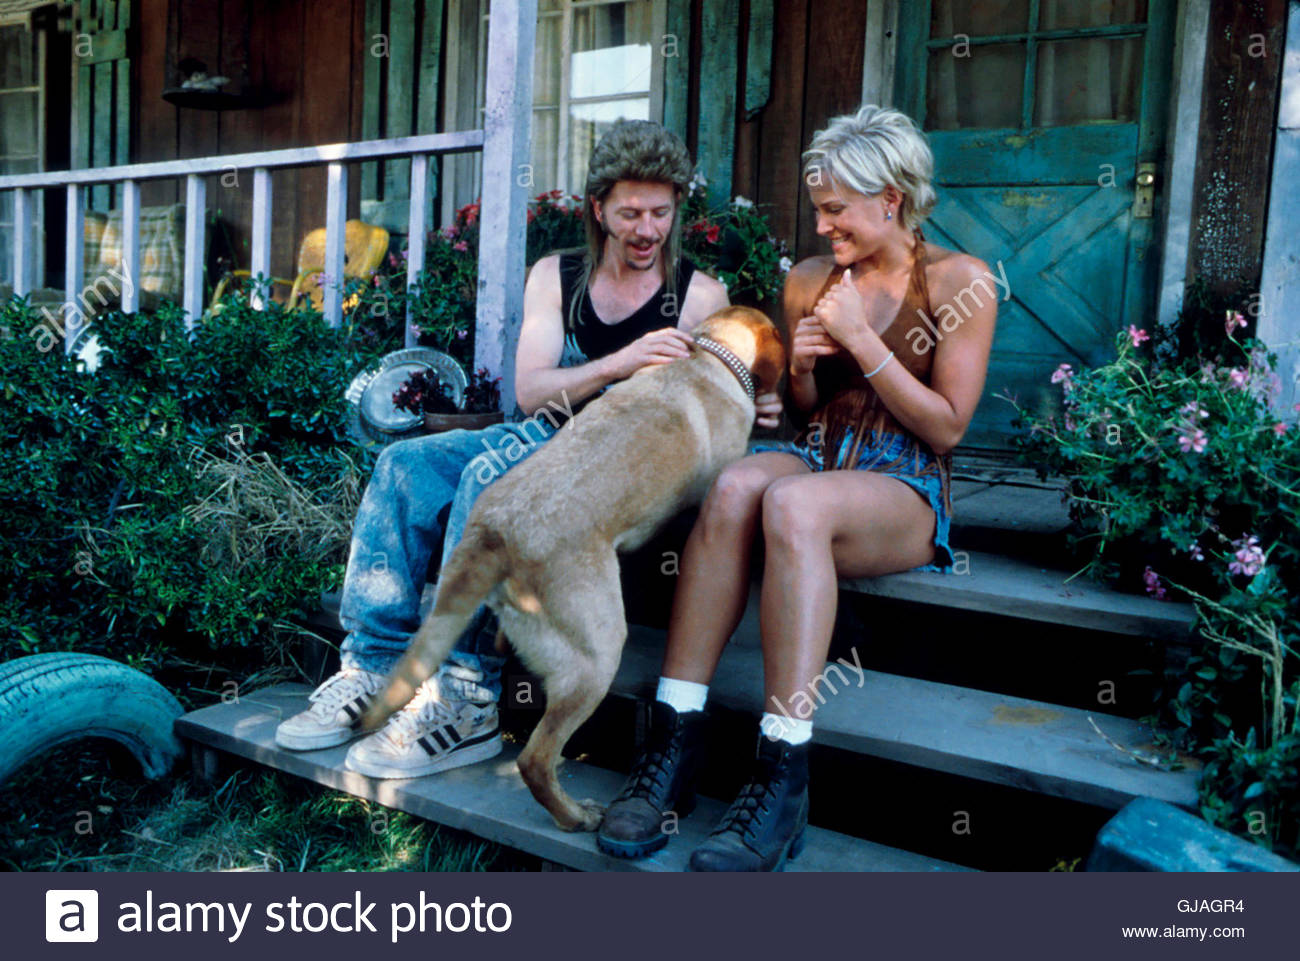 Joe dirt stock photos joe dirt stock images page 2 alamy kinostart am 24 mai joe dirt joe dirt david spade hat eine vokuhila ccuart Choice Image